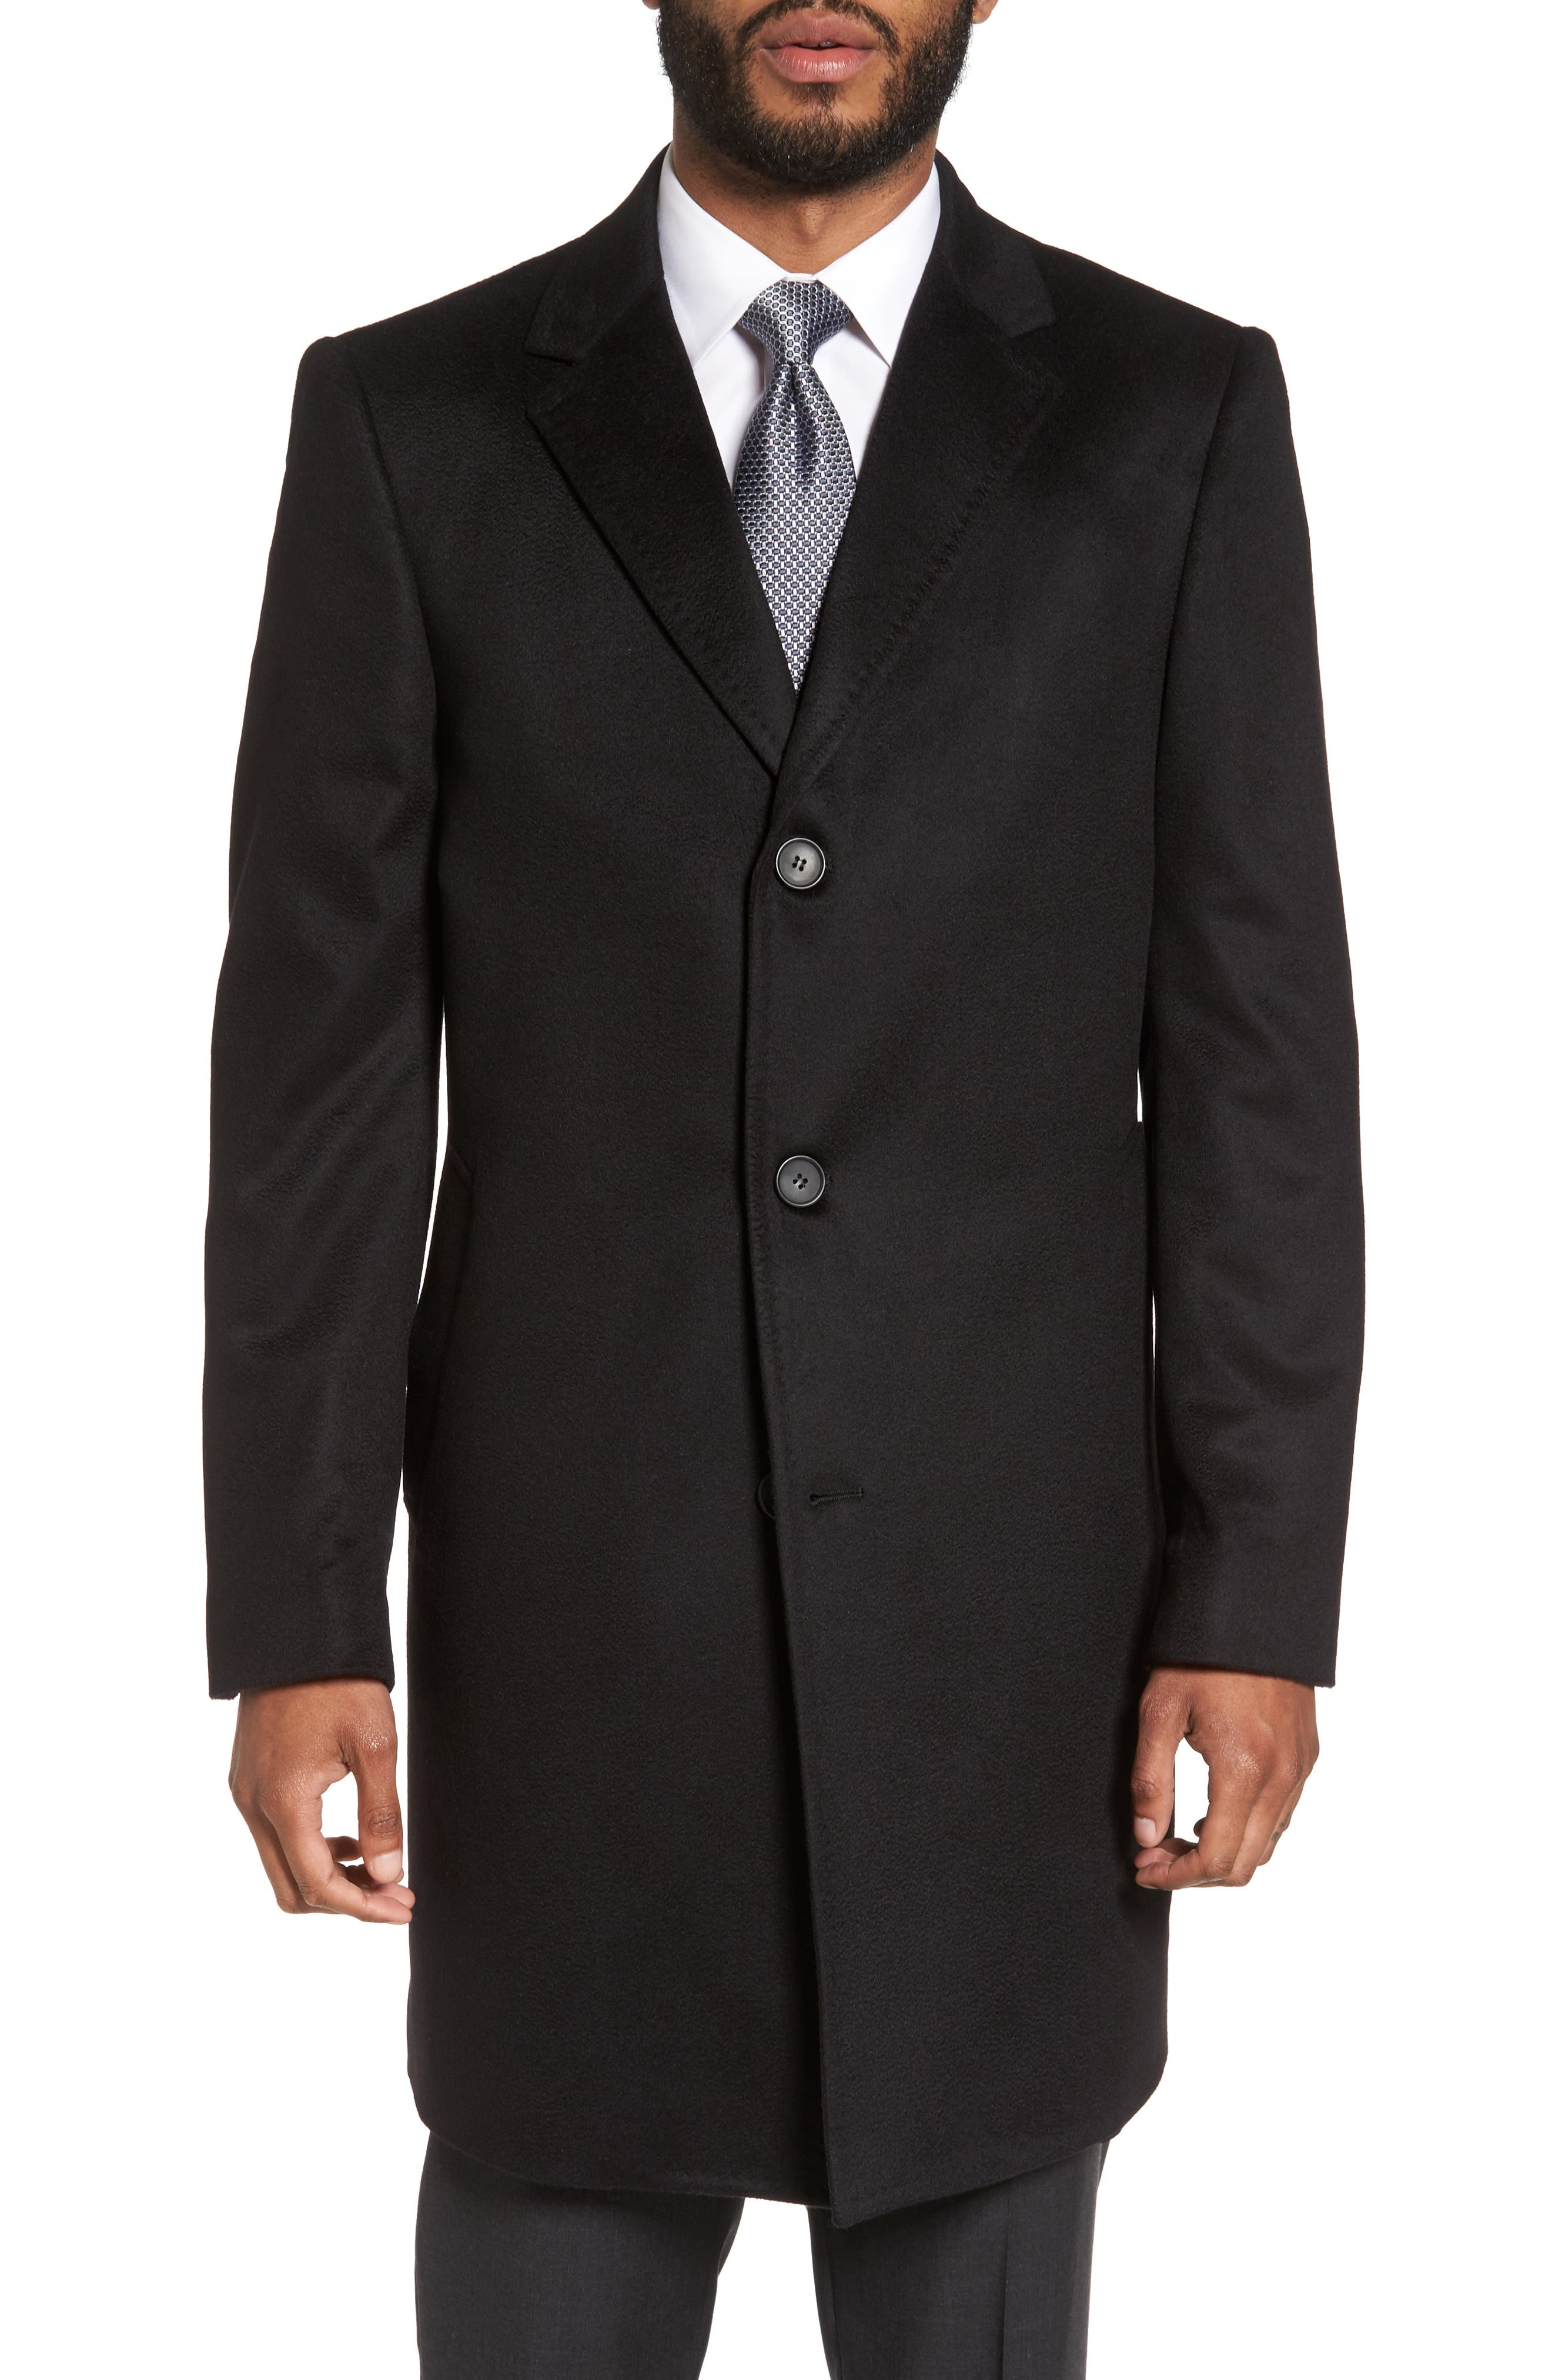 Carter Classic Fit Cashmere Overcoat,                         Main,                         color, Black